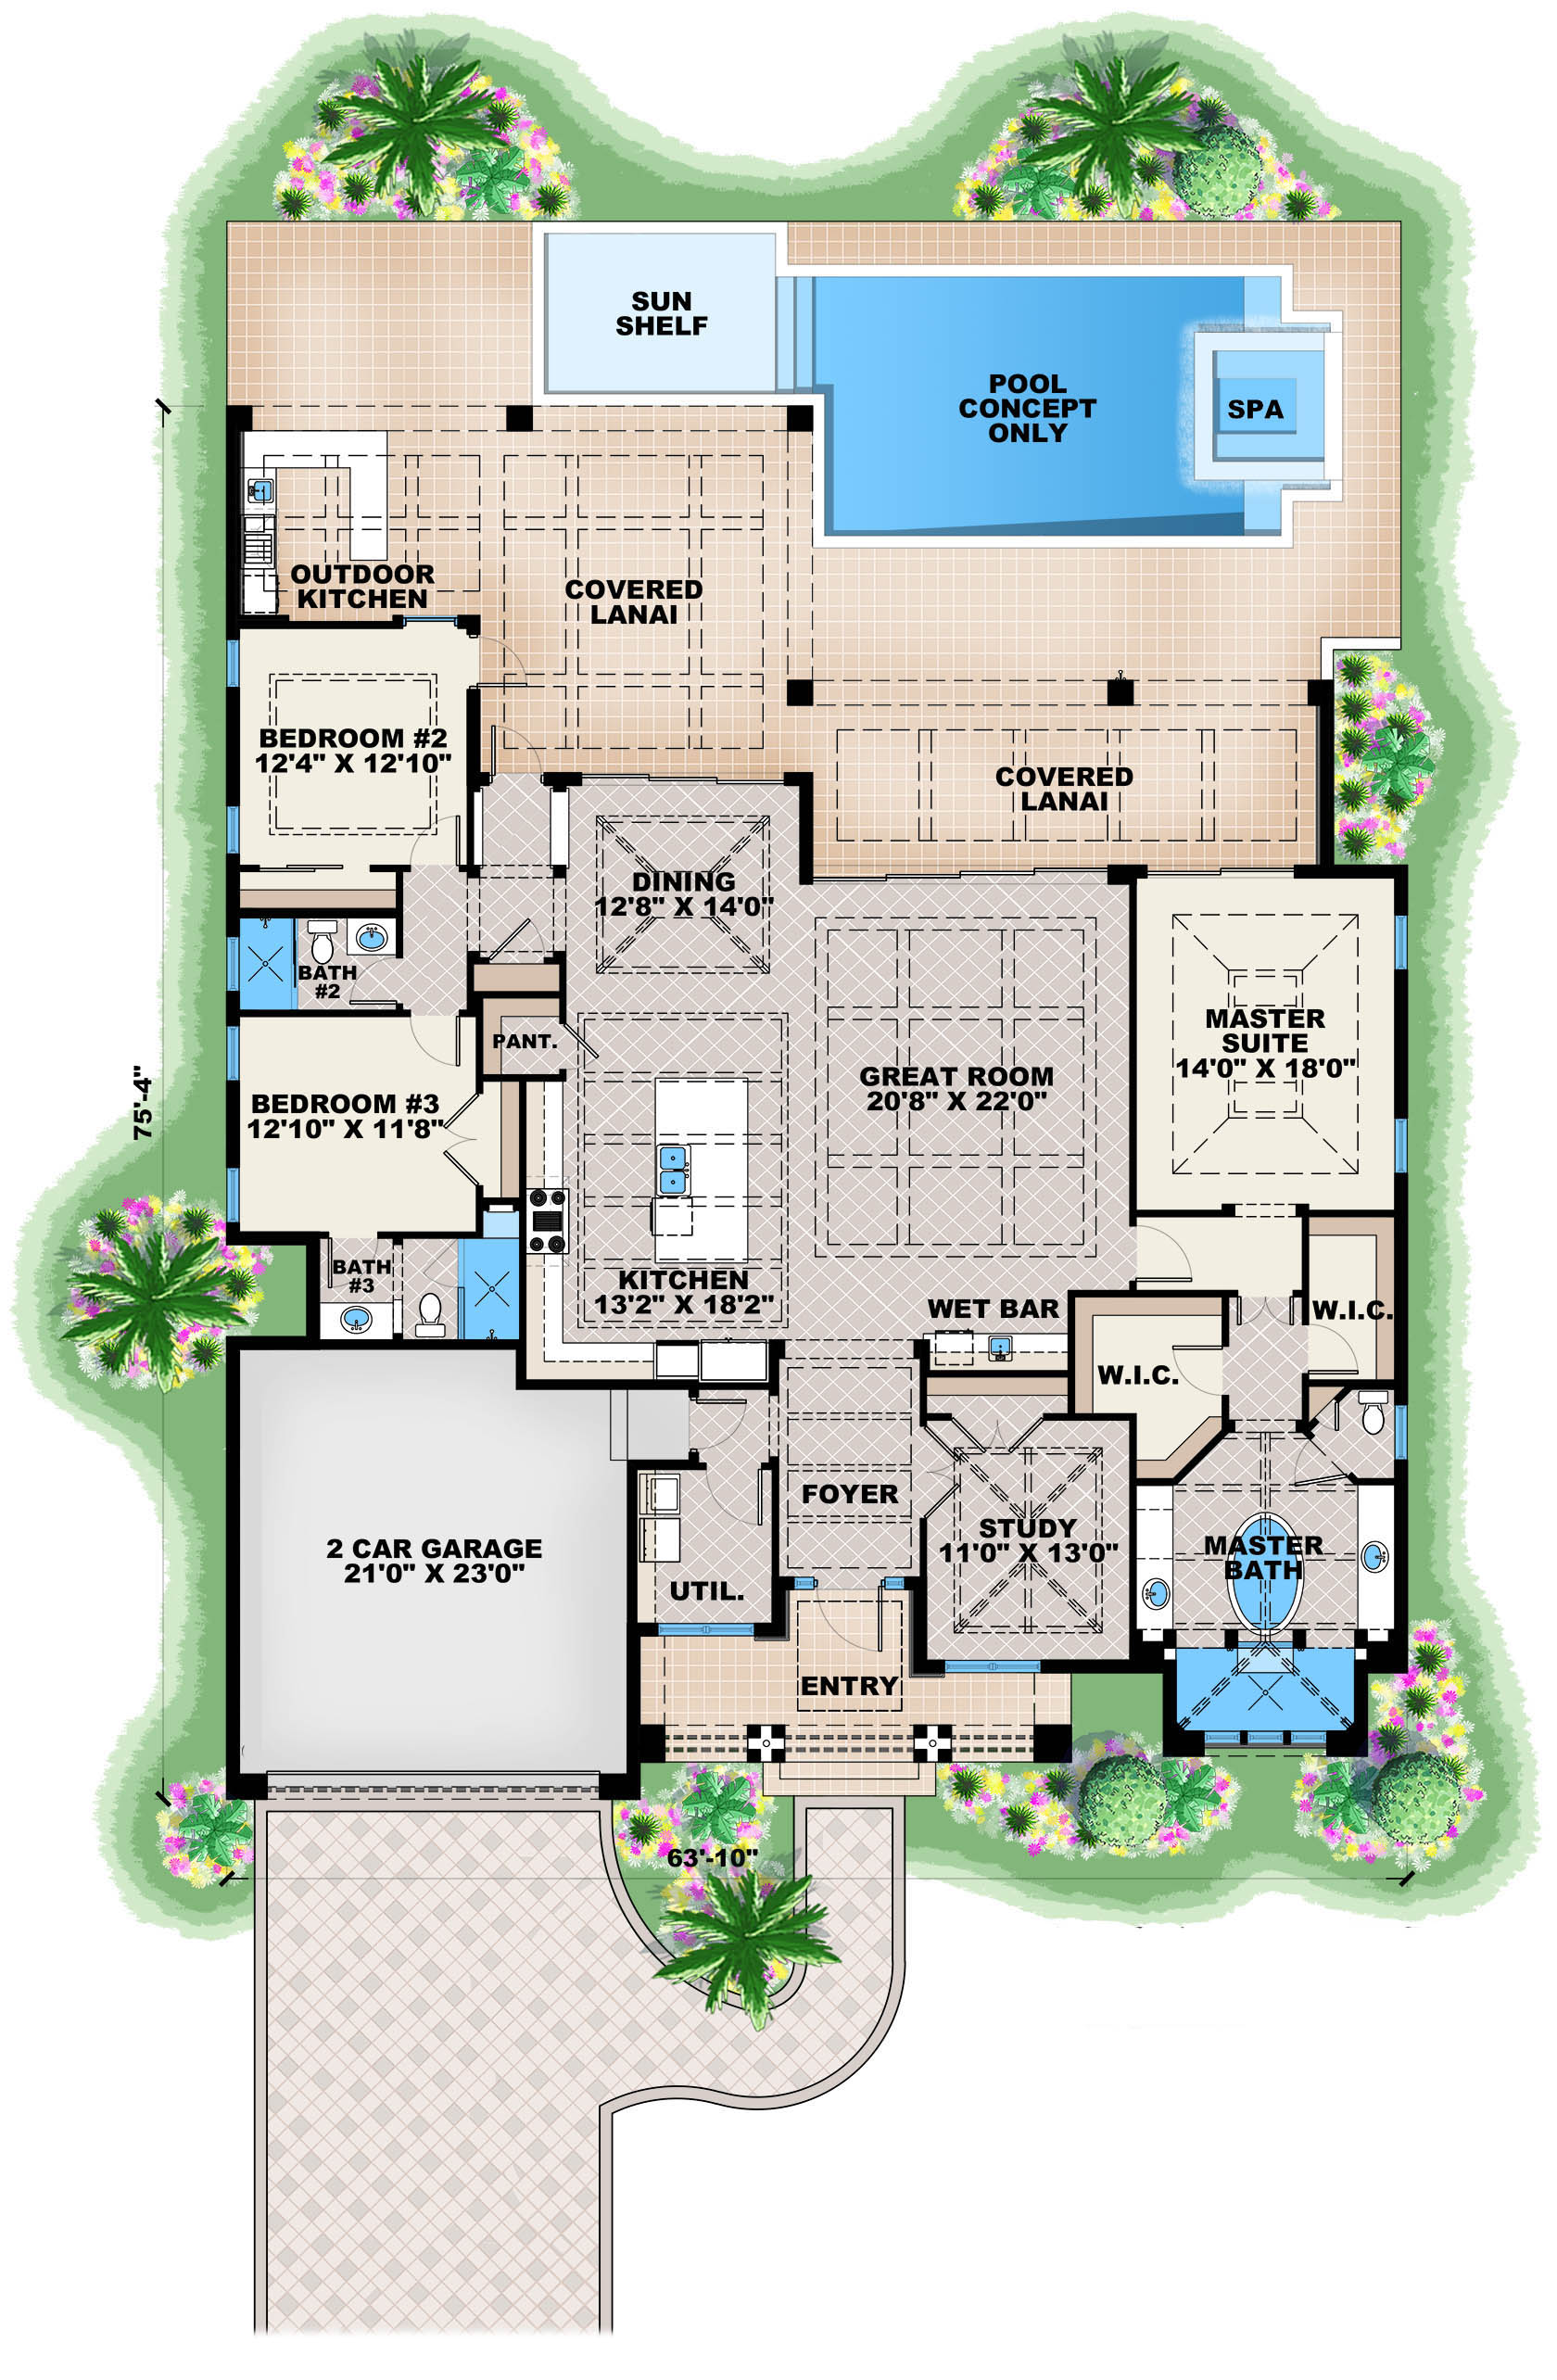 Contemporary House Plan 1751134 3 Bedrm 2684 Sq Ft Home Plan